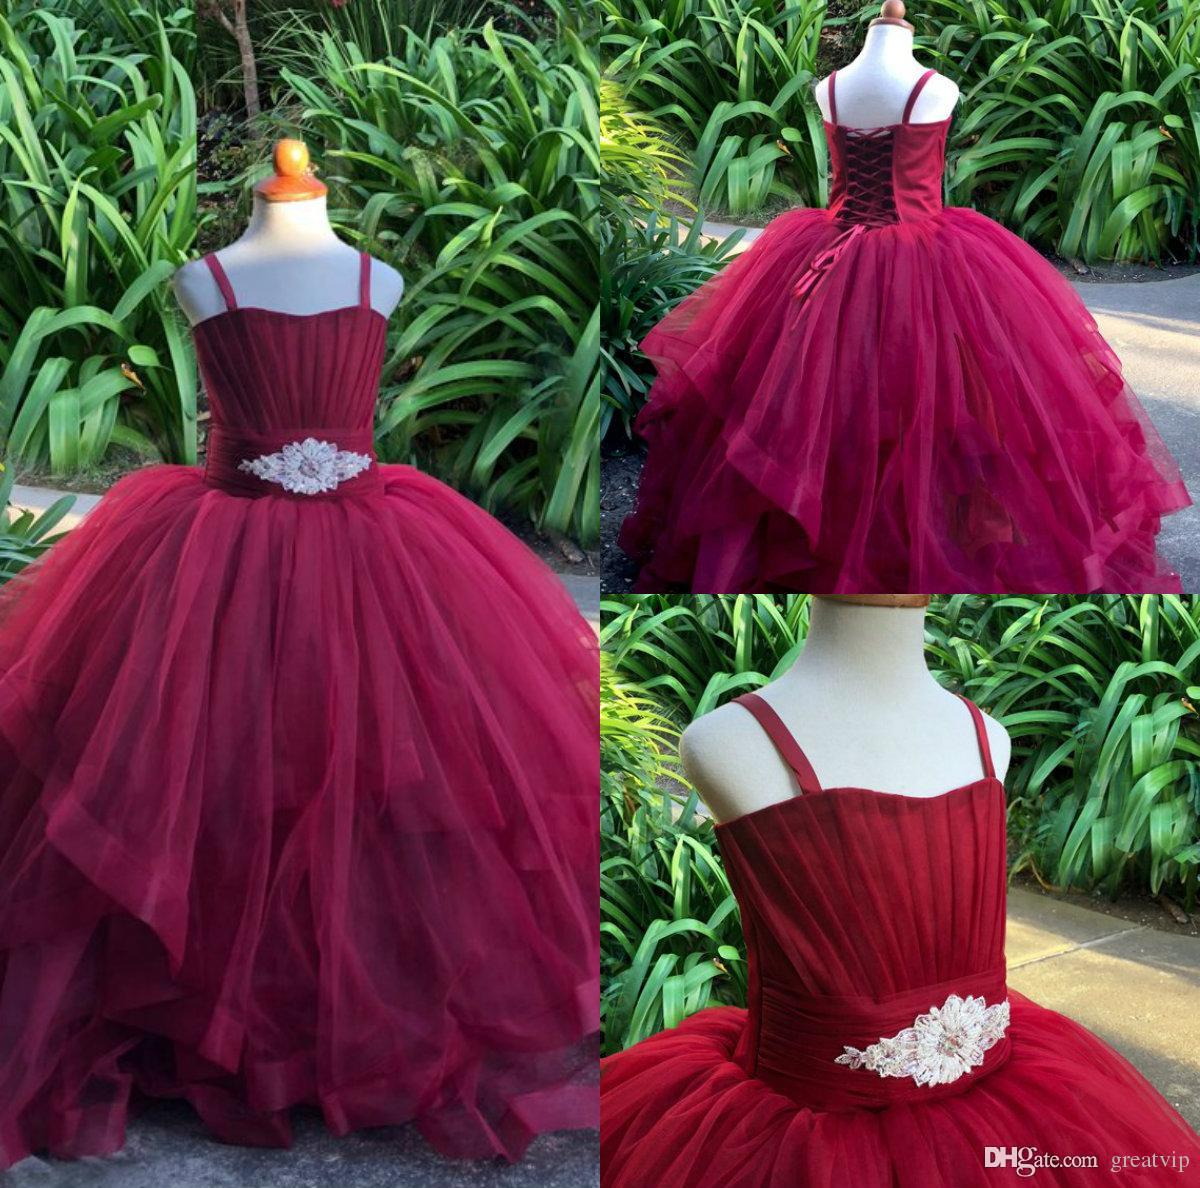 709ddf00b Burgundy Ball Gown Flower Girl Dresses Spaghetti Lace Up Toddler Princess  Pageant Gowns First Communion Gowns For Wedding Party Dress Flower Girl  Ivory ...